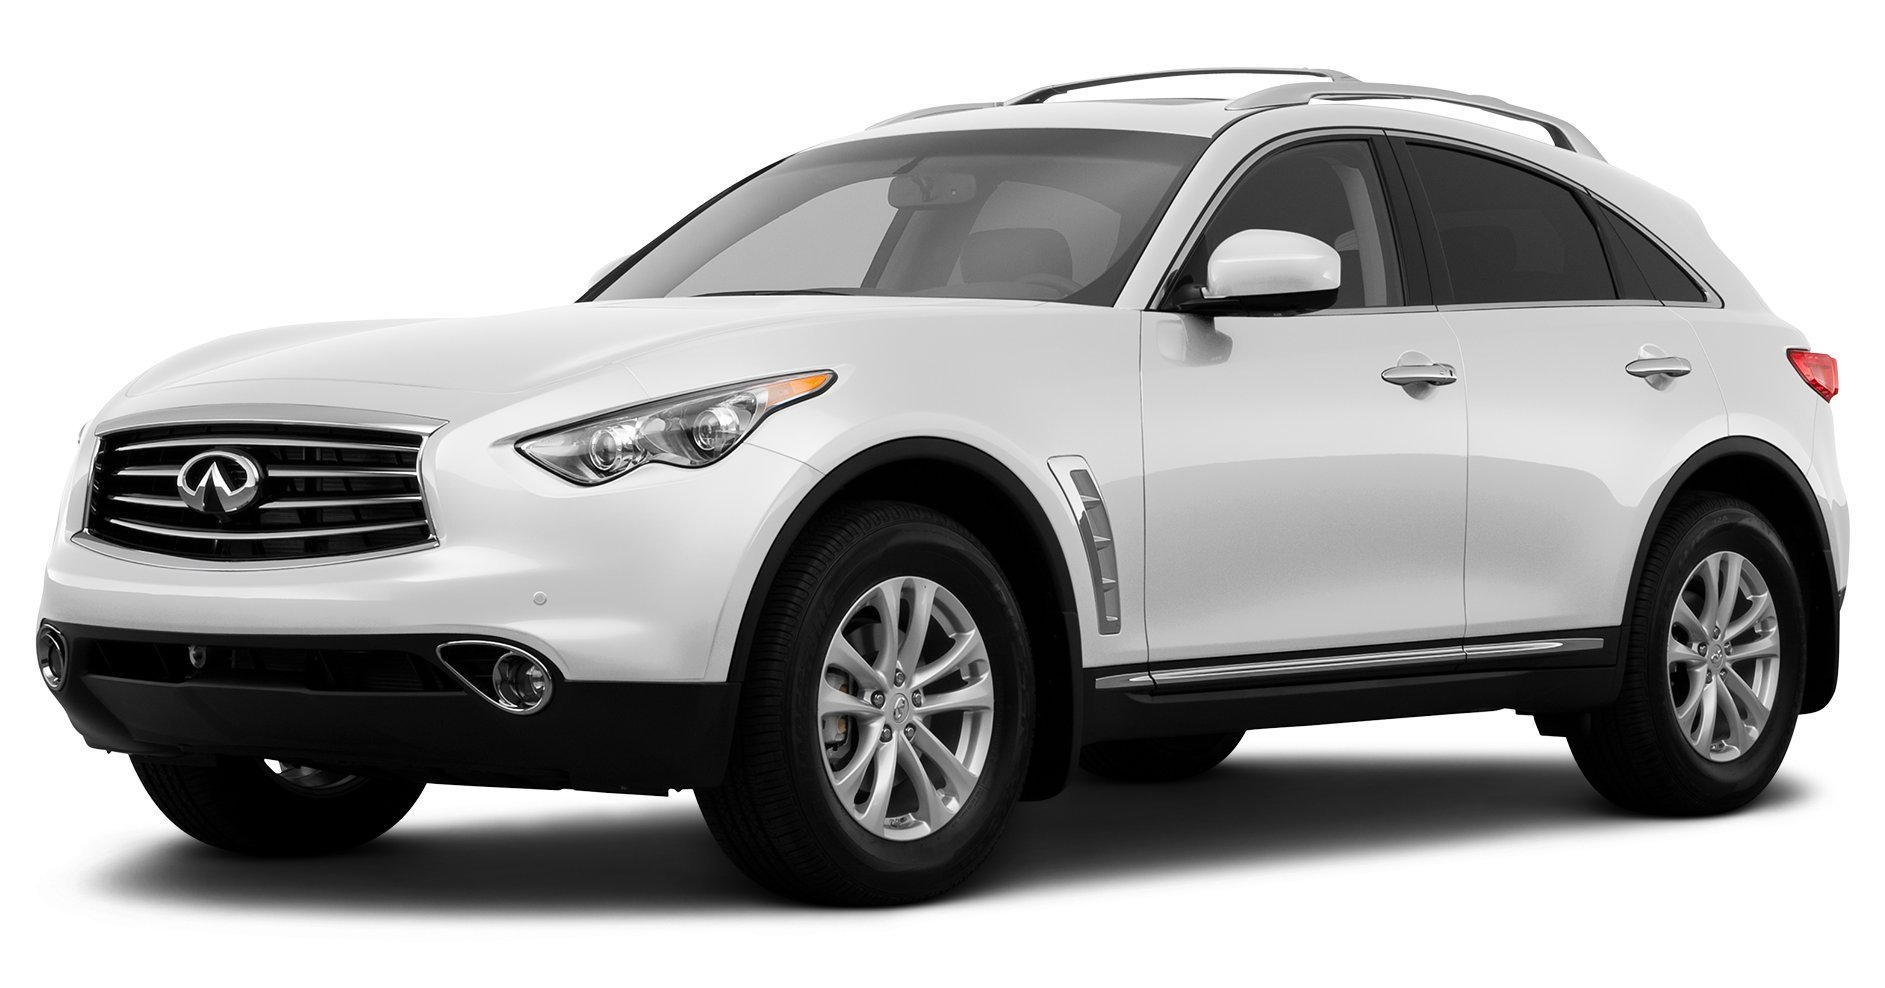 Amazon 2013 porsche cayenne reviews images and specs vehicles 2013 infiniti fx37 limited edition all wheel drive 4 door vanachro Gallery